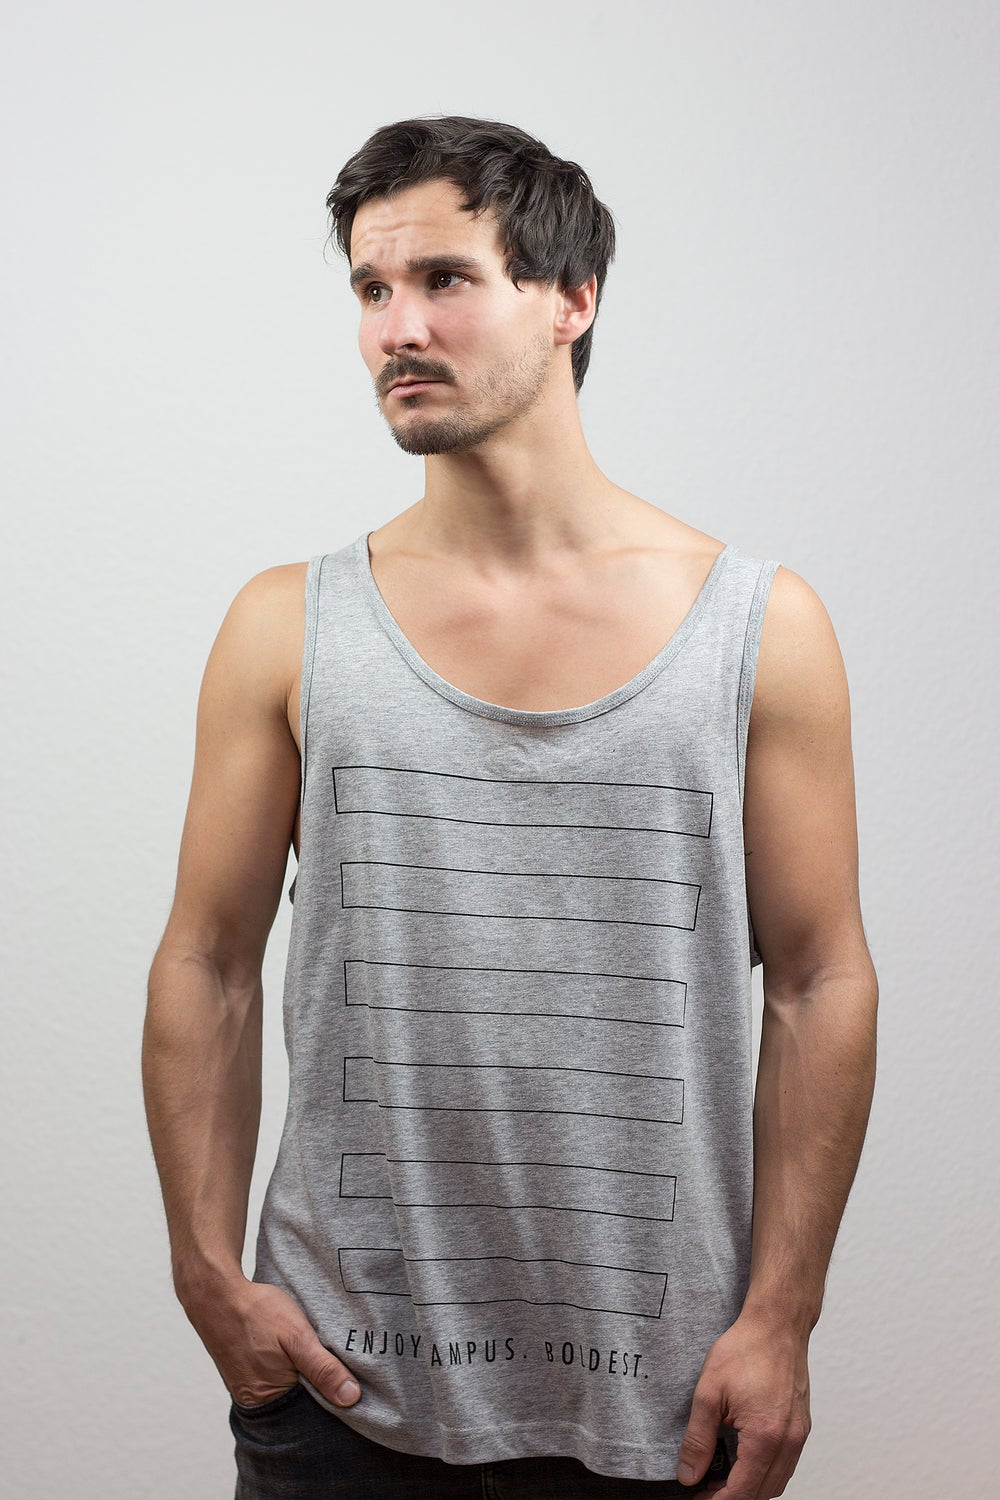 Image of CAMPUS Mens Wide Muscle Shirt